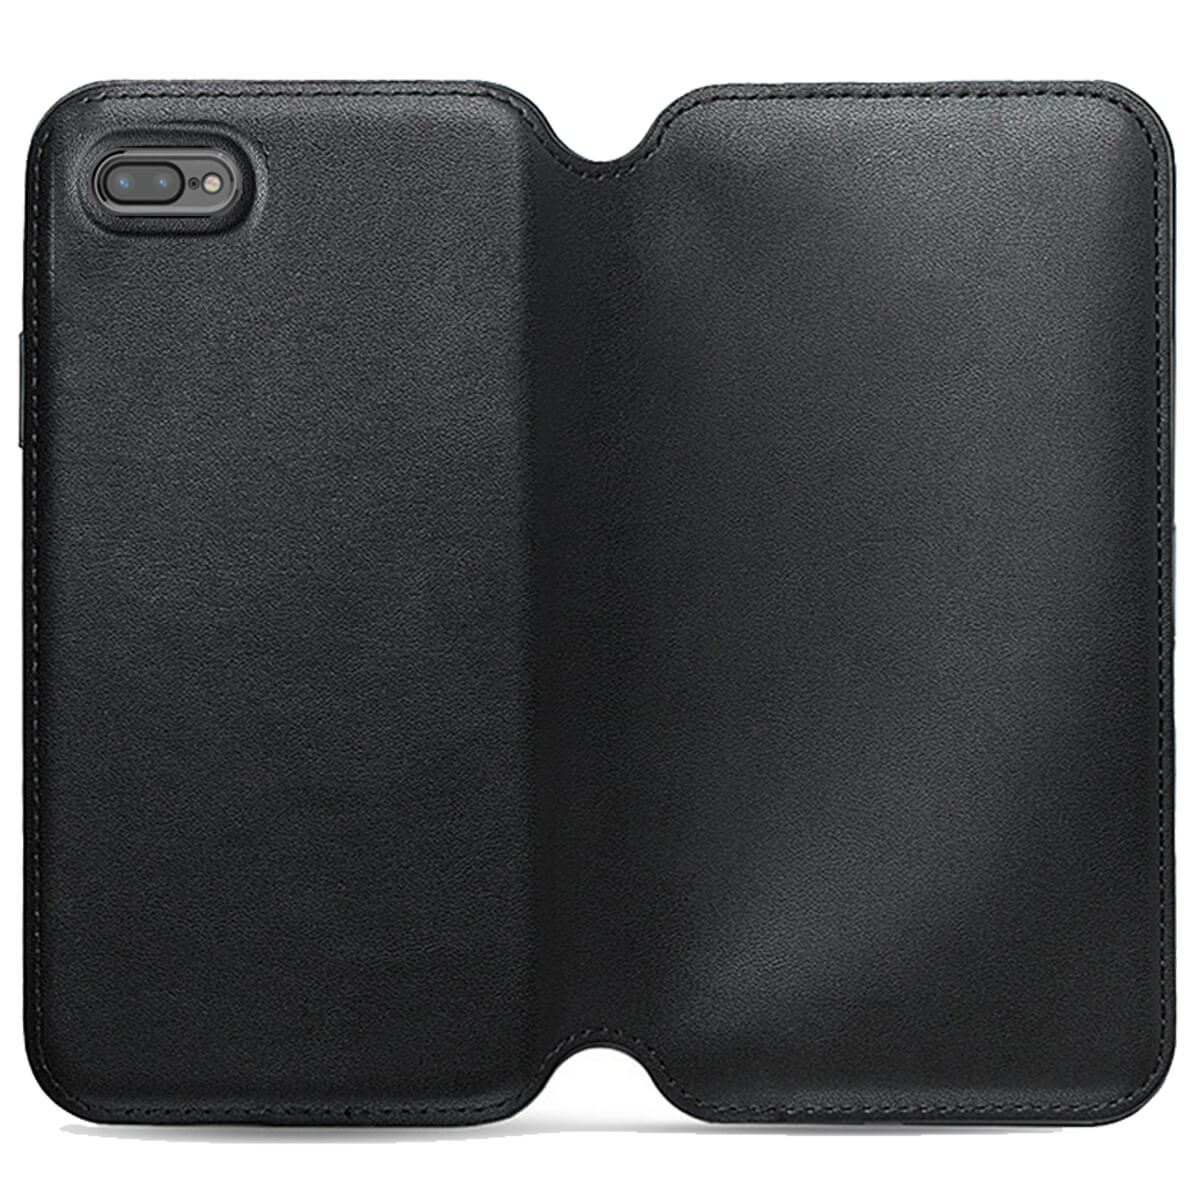 Genuine-Leather-Folio-Flip-Wallet-Case-Cover-For-Apple-iPhone-X-8-7-6S-6-Plus thumbnail 3